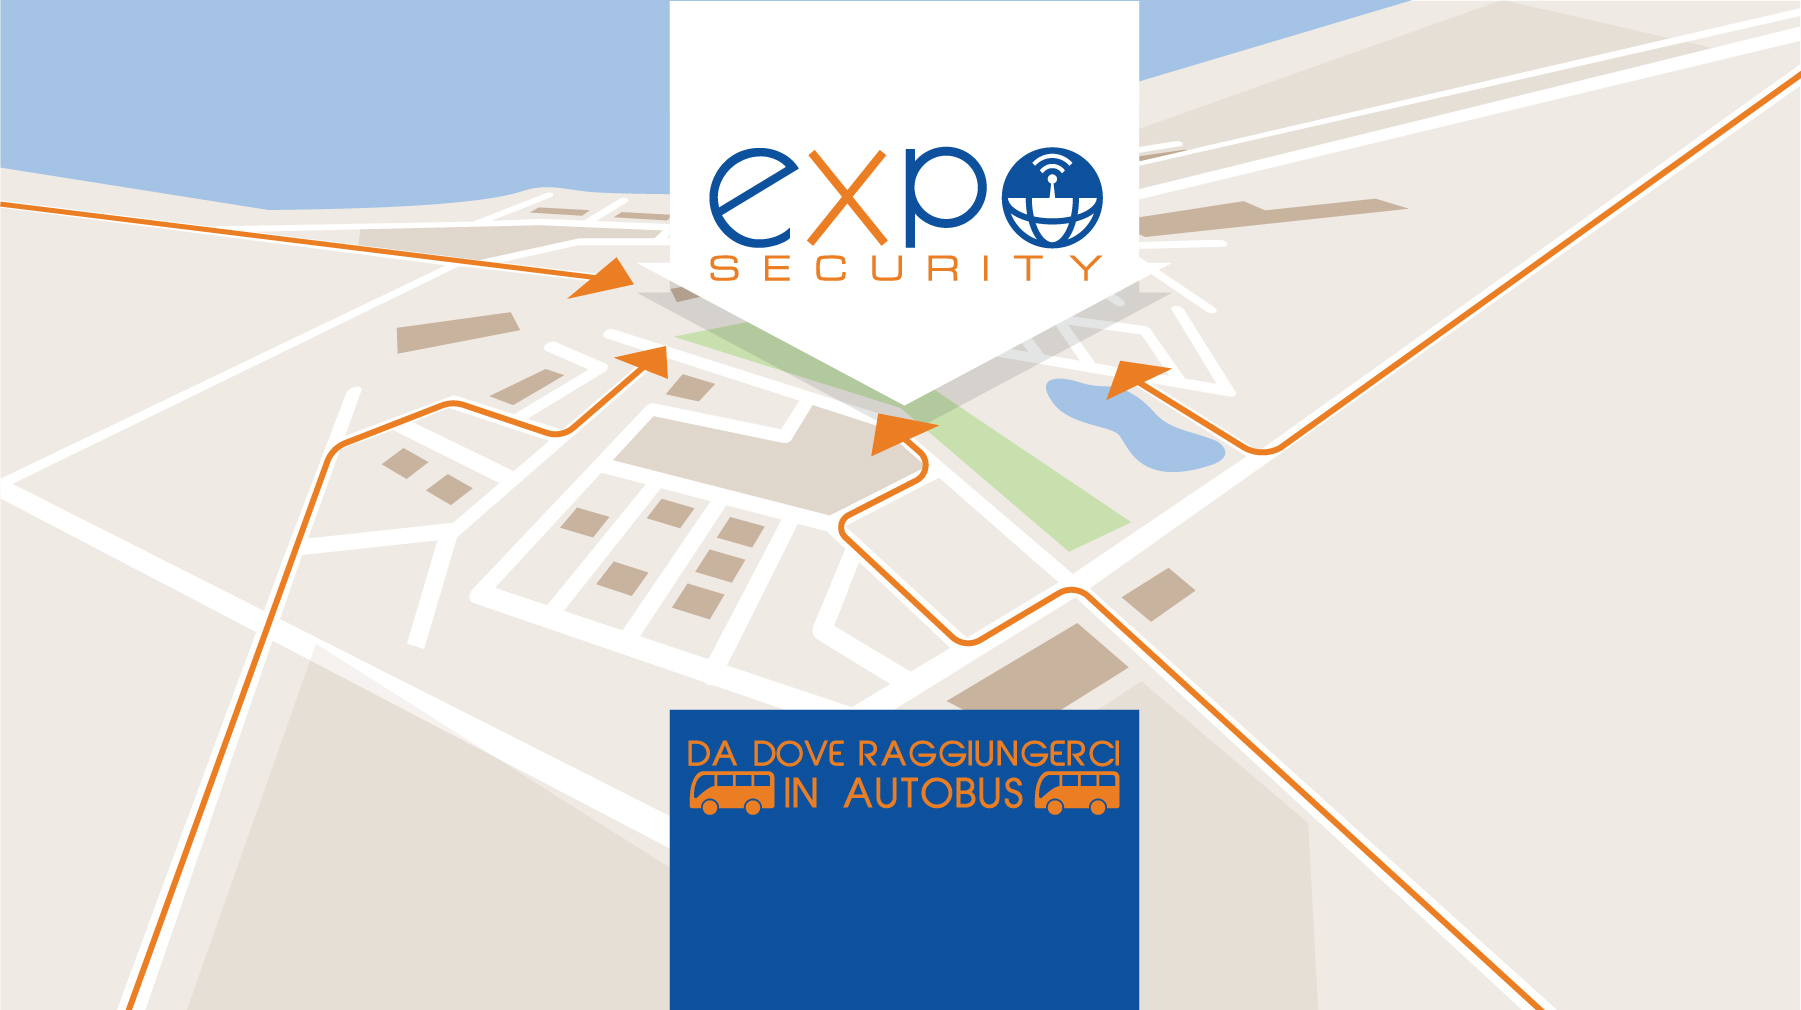 Expo_Security_Map-01-01